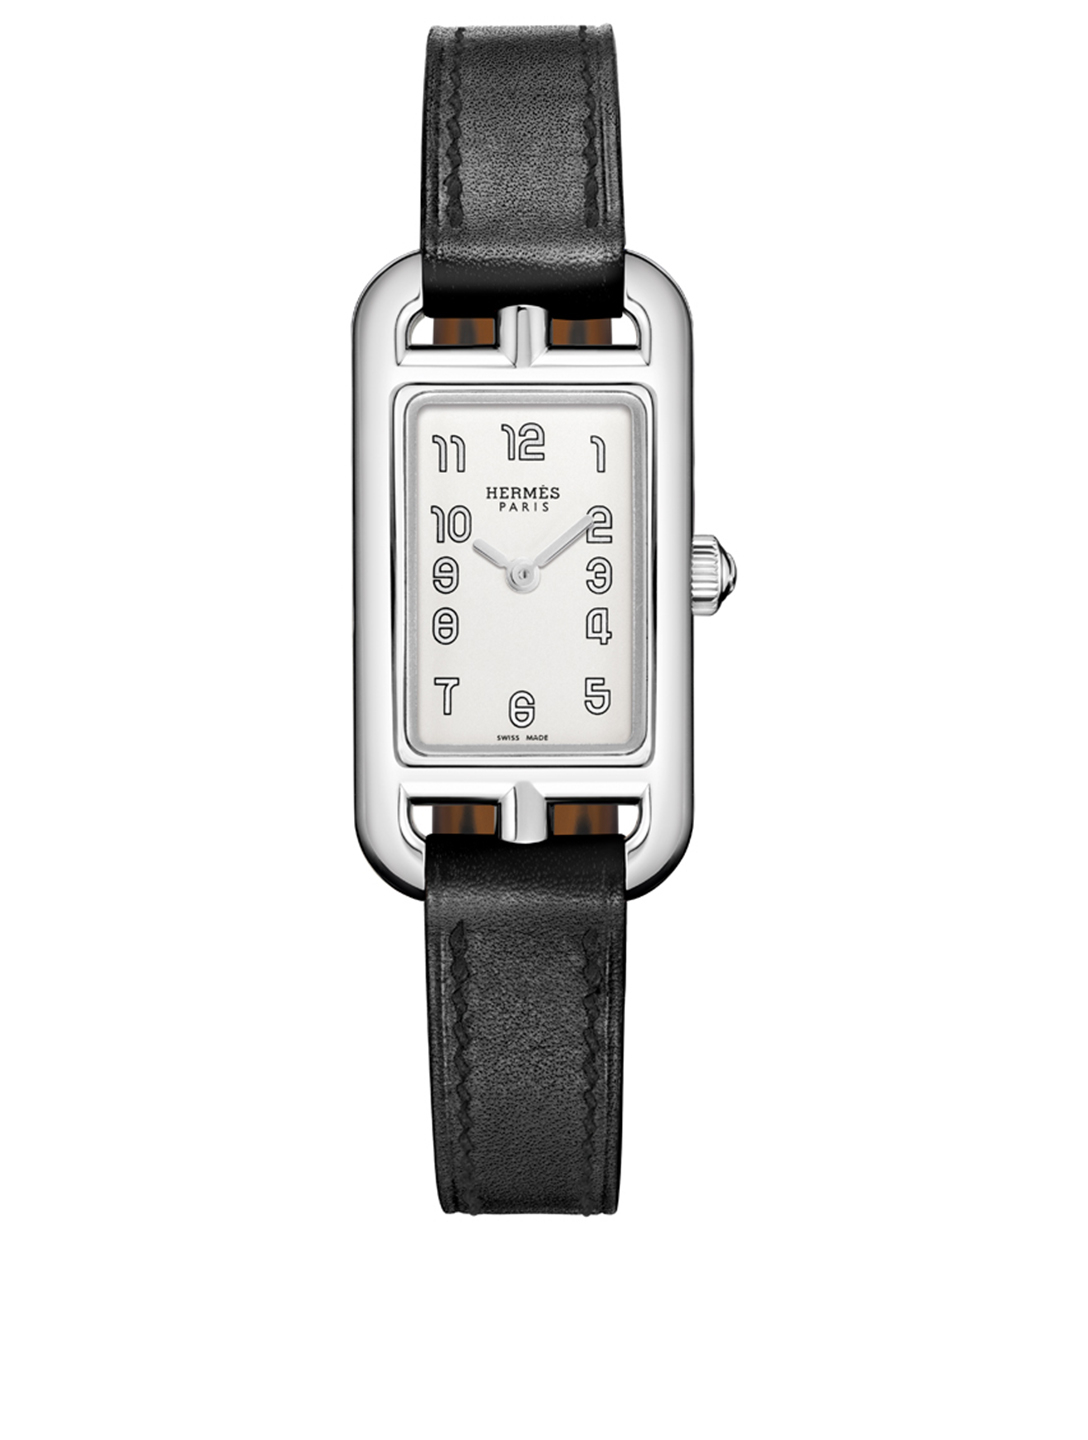 HERMÈS Nantucket TPM Leather Strap Watch, 17 x 23mm Women's Black